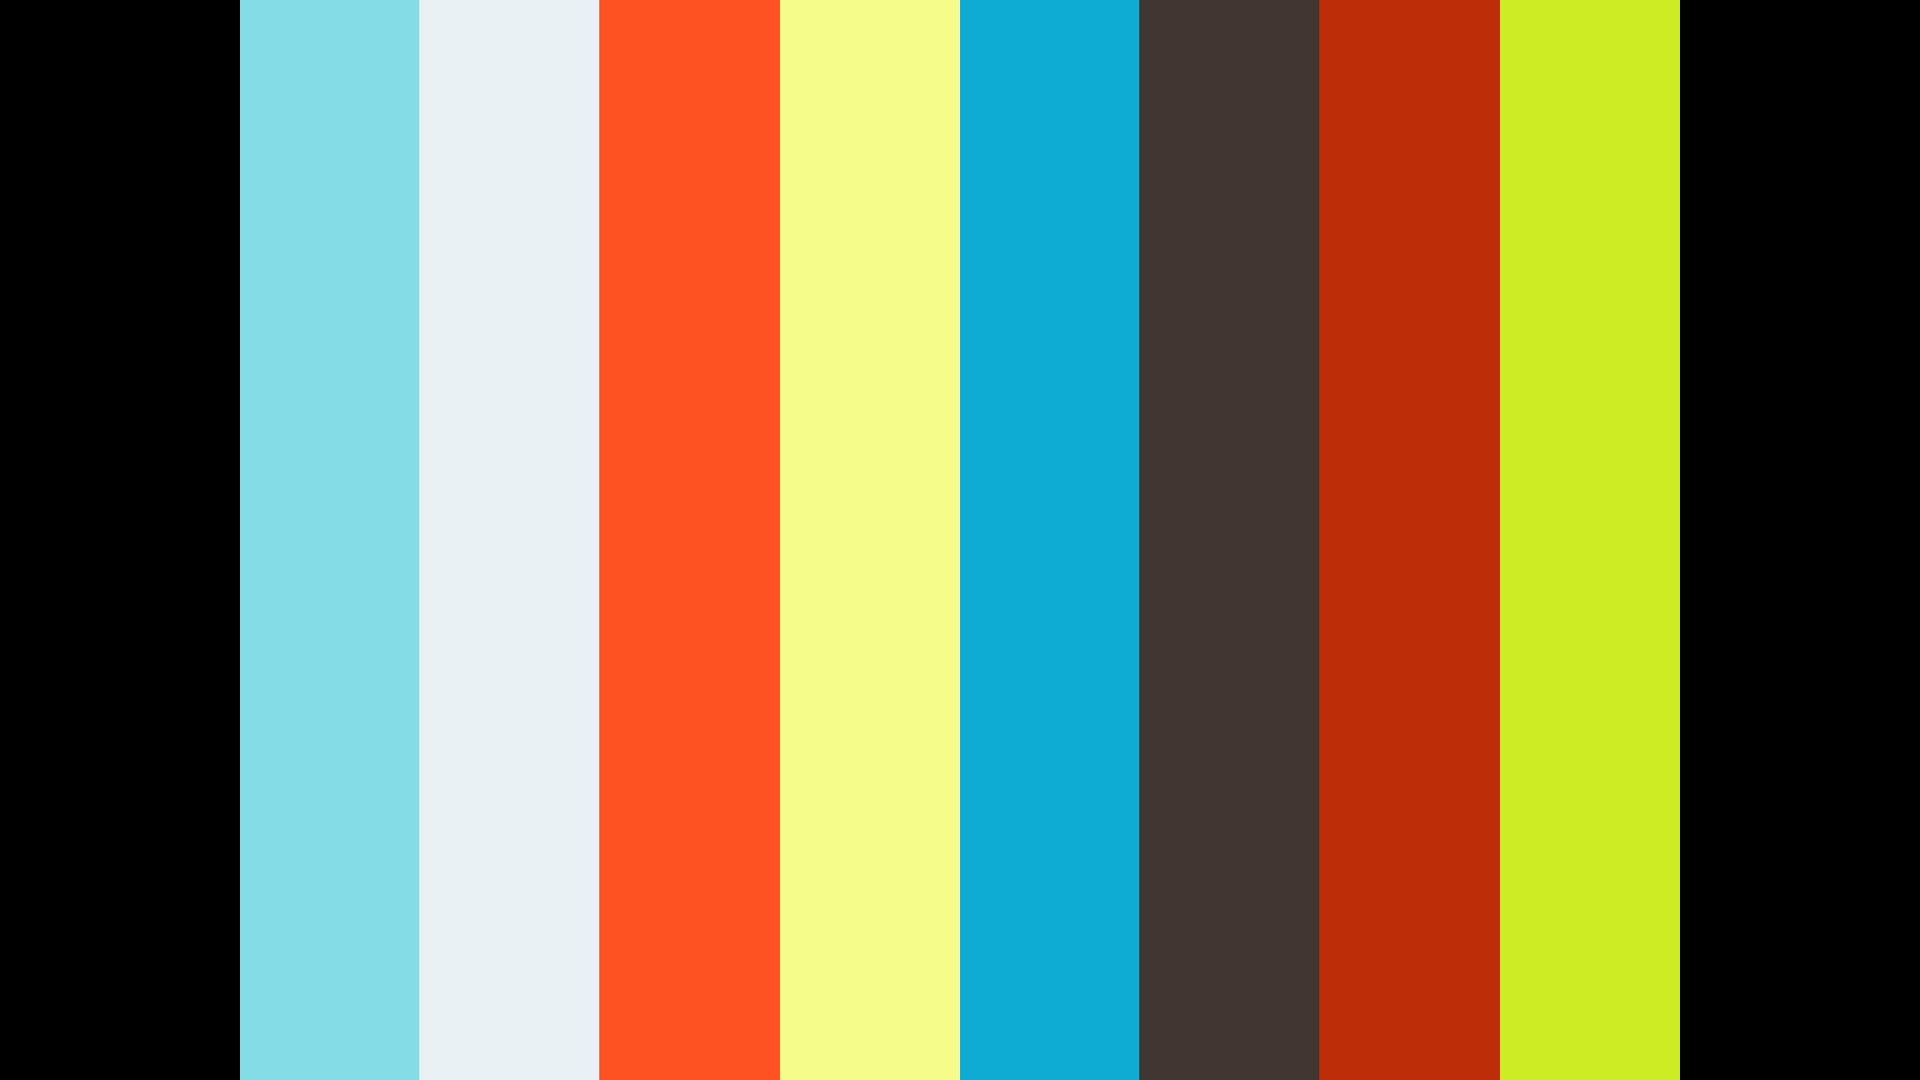 Spectrum: Embracing Gender